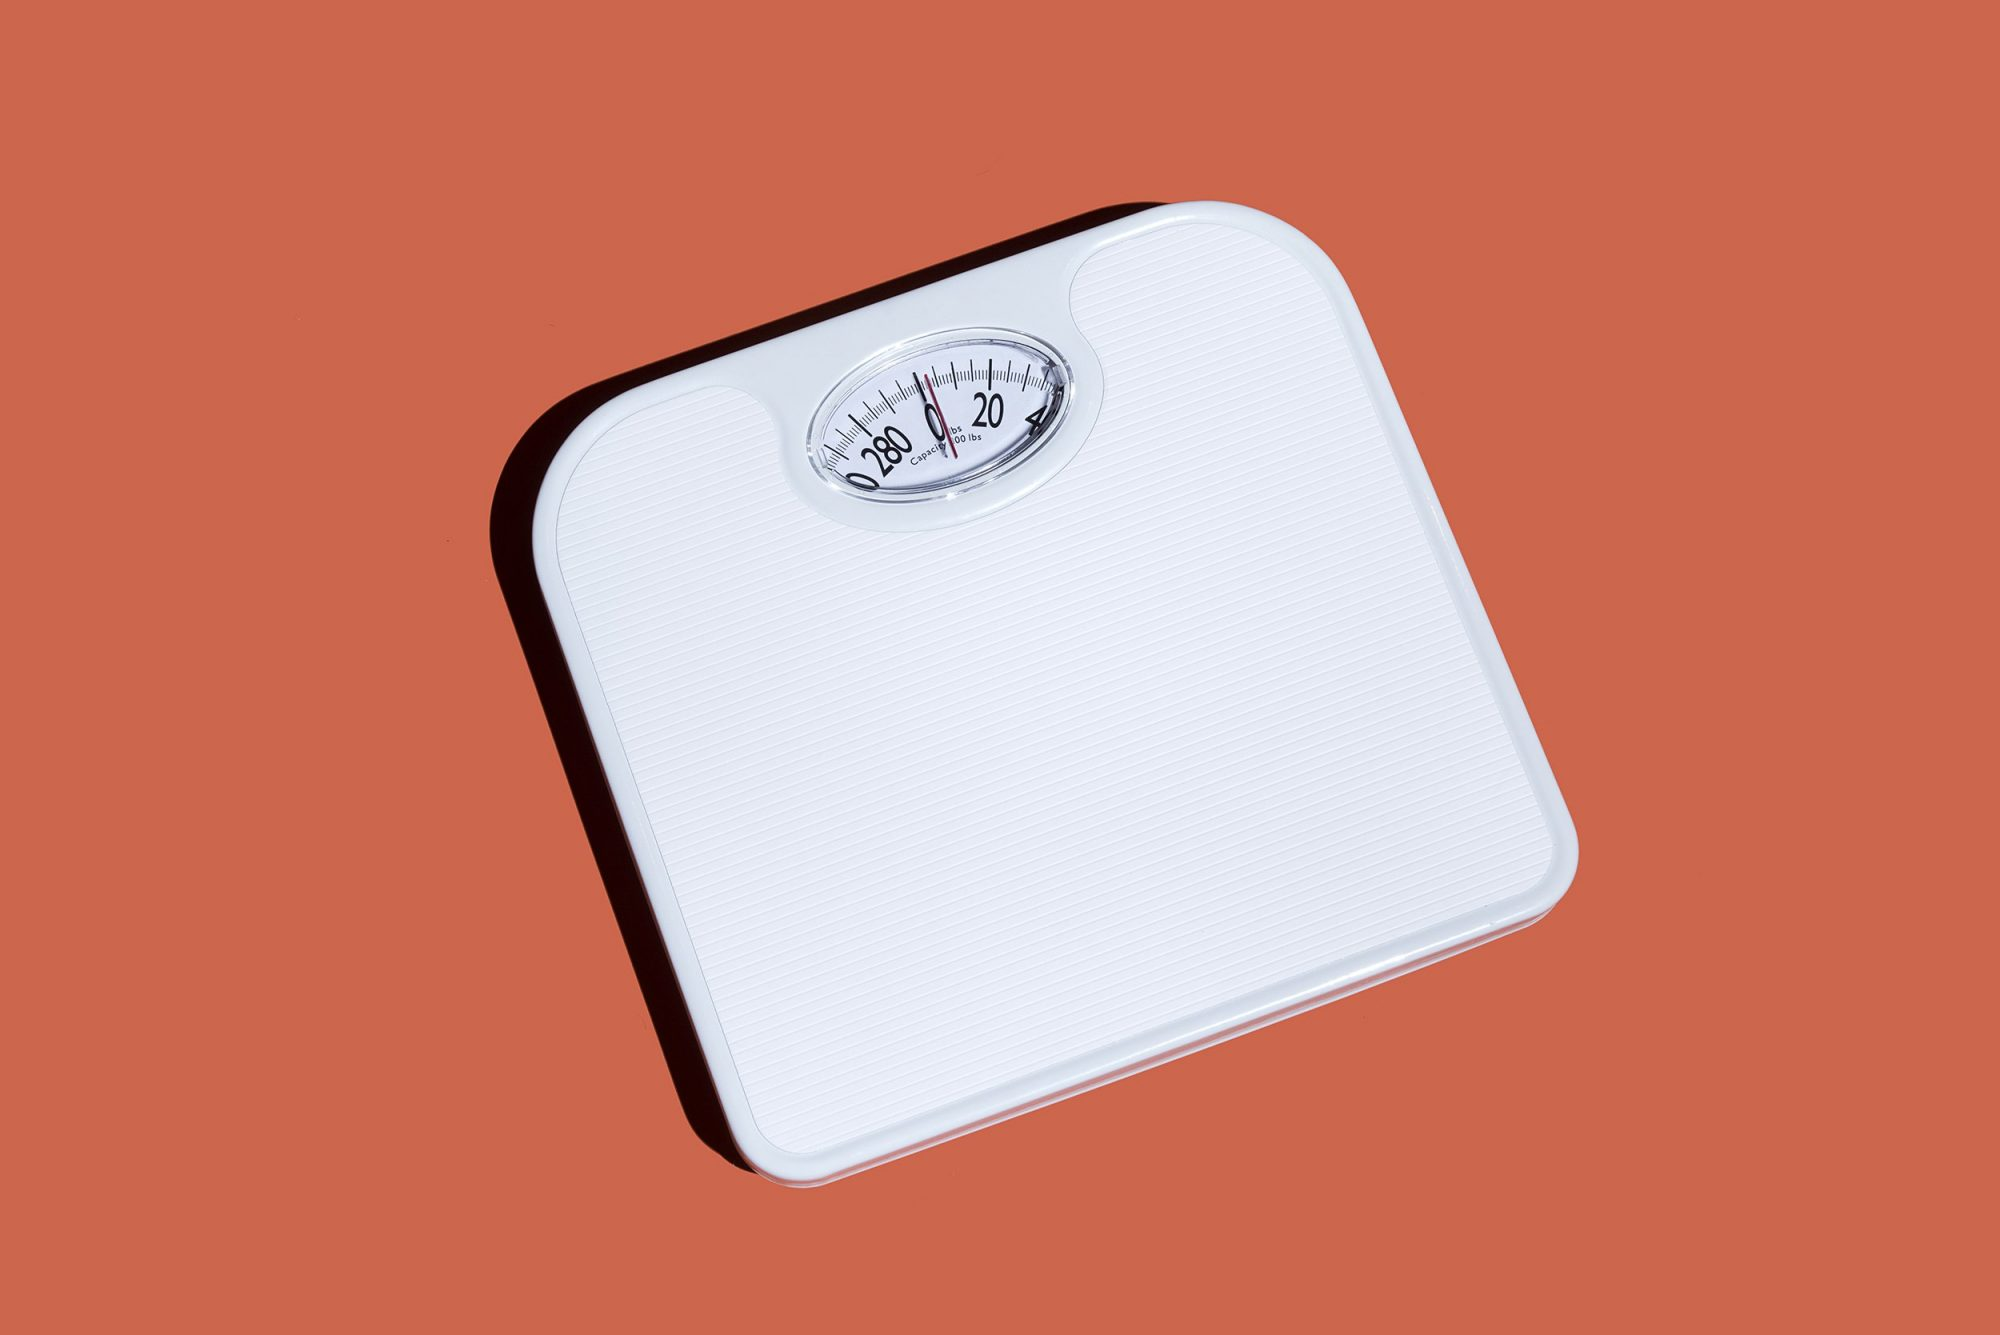 scale-3-weight-body-image-diet-health-fitness-betterment